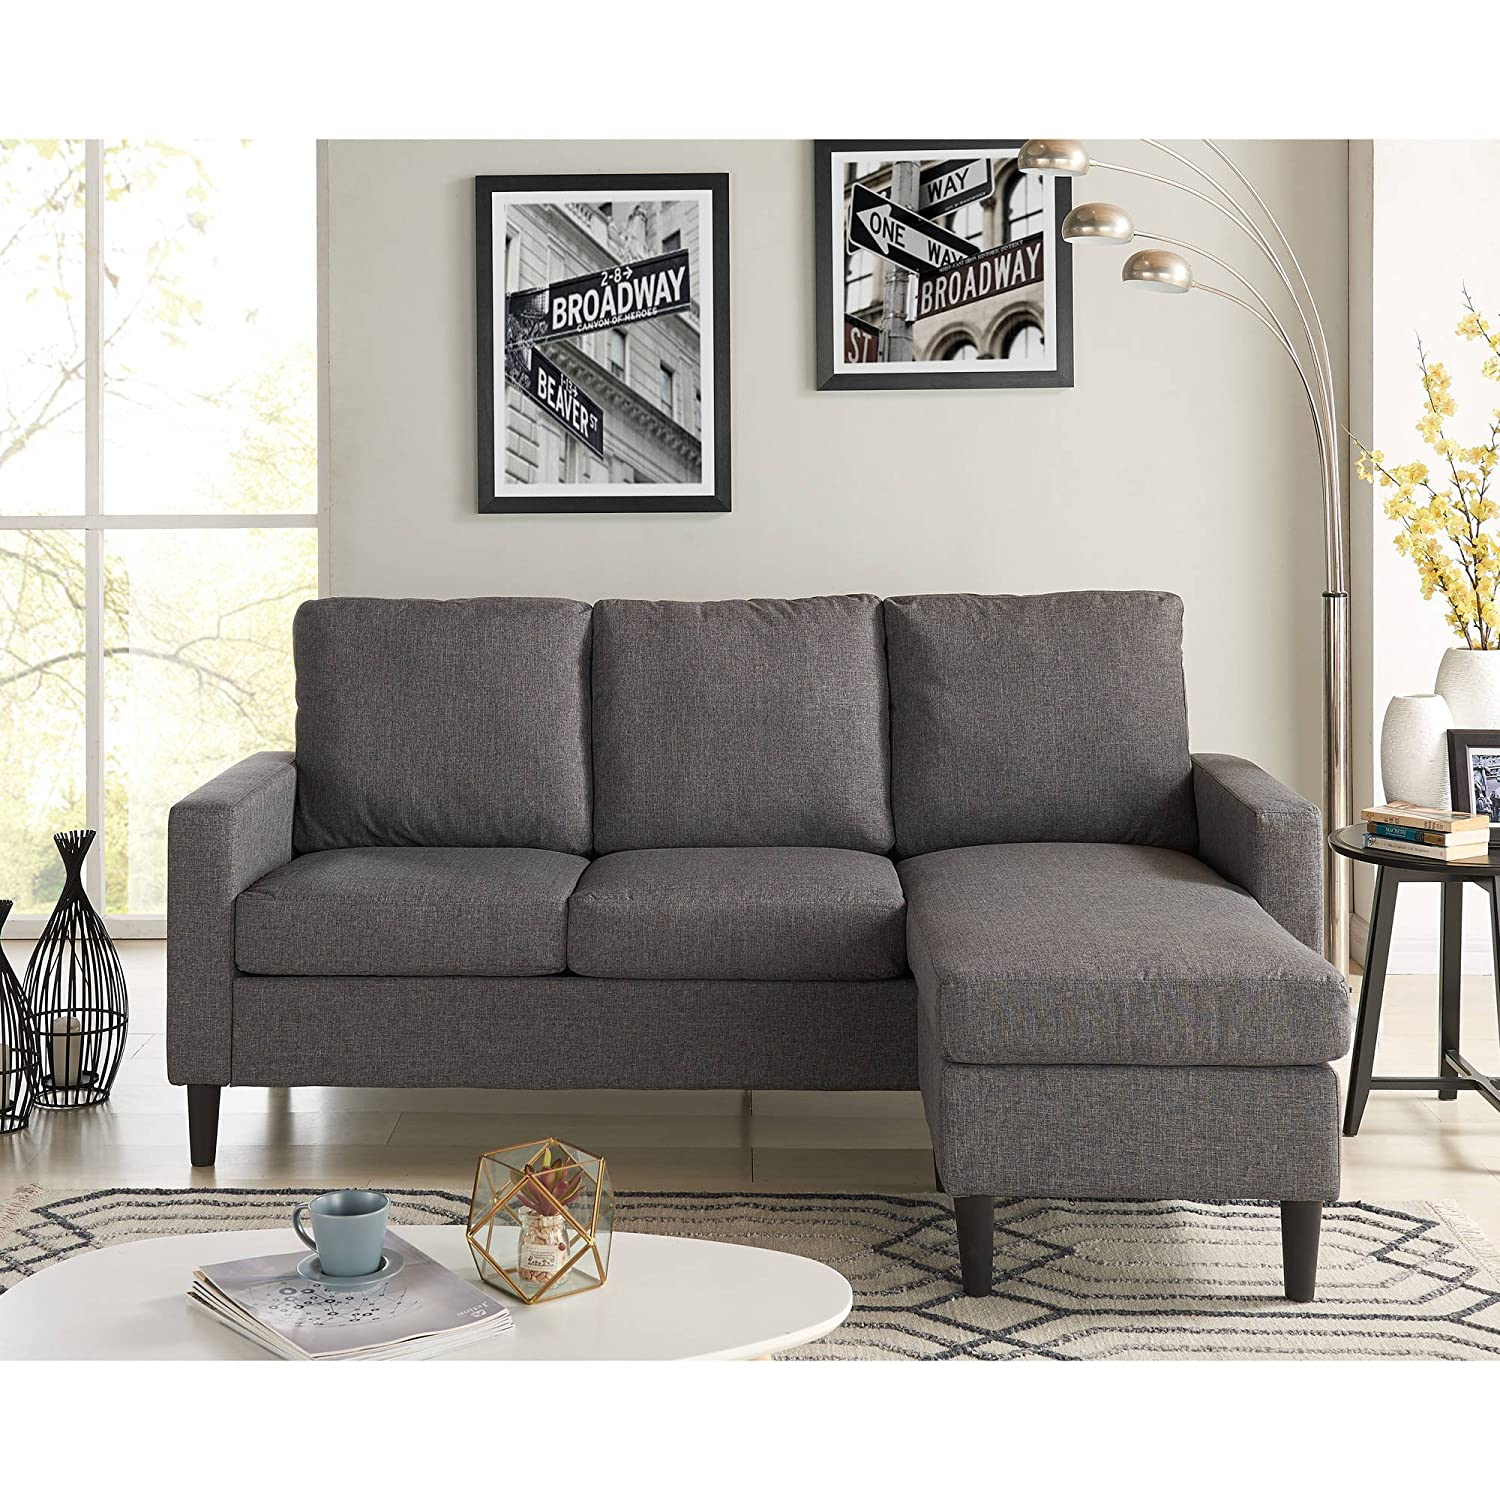 Mainstays Apartment Reversible Sectional, Grey